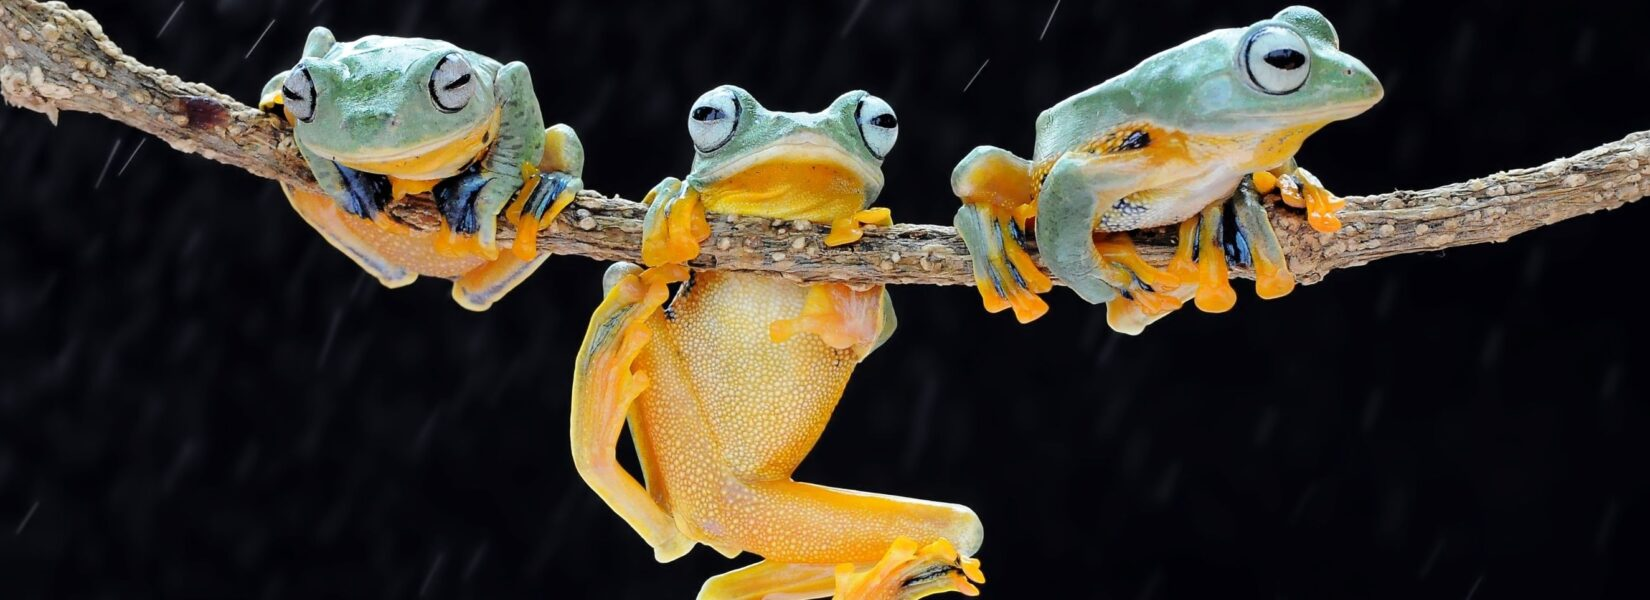 Dreaming About Frogs – Meaning & Interpretation of Frog Dreams